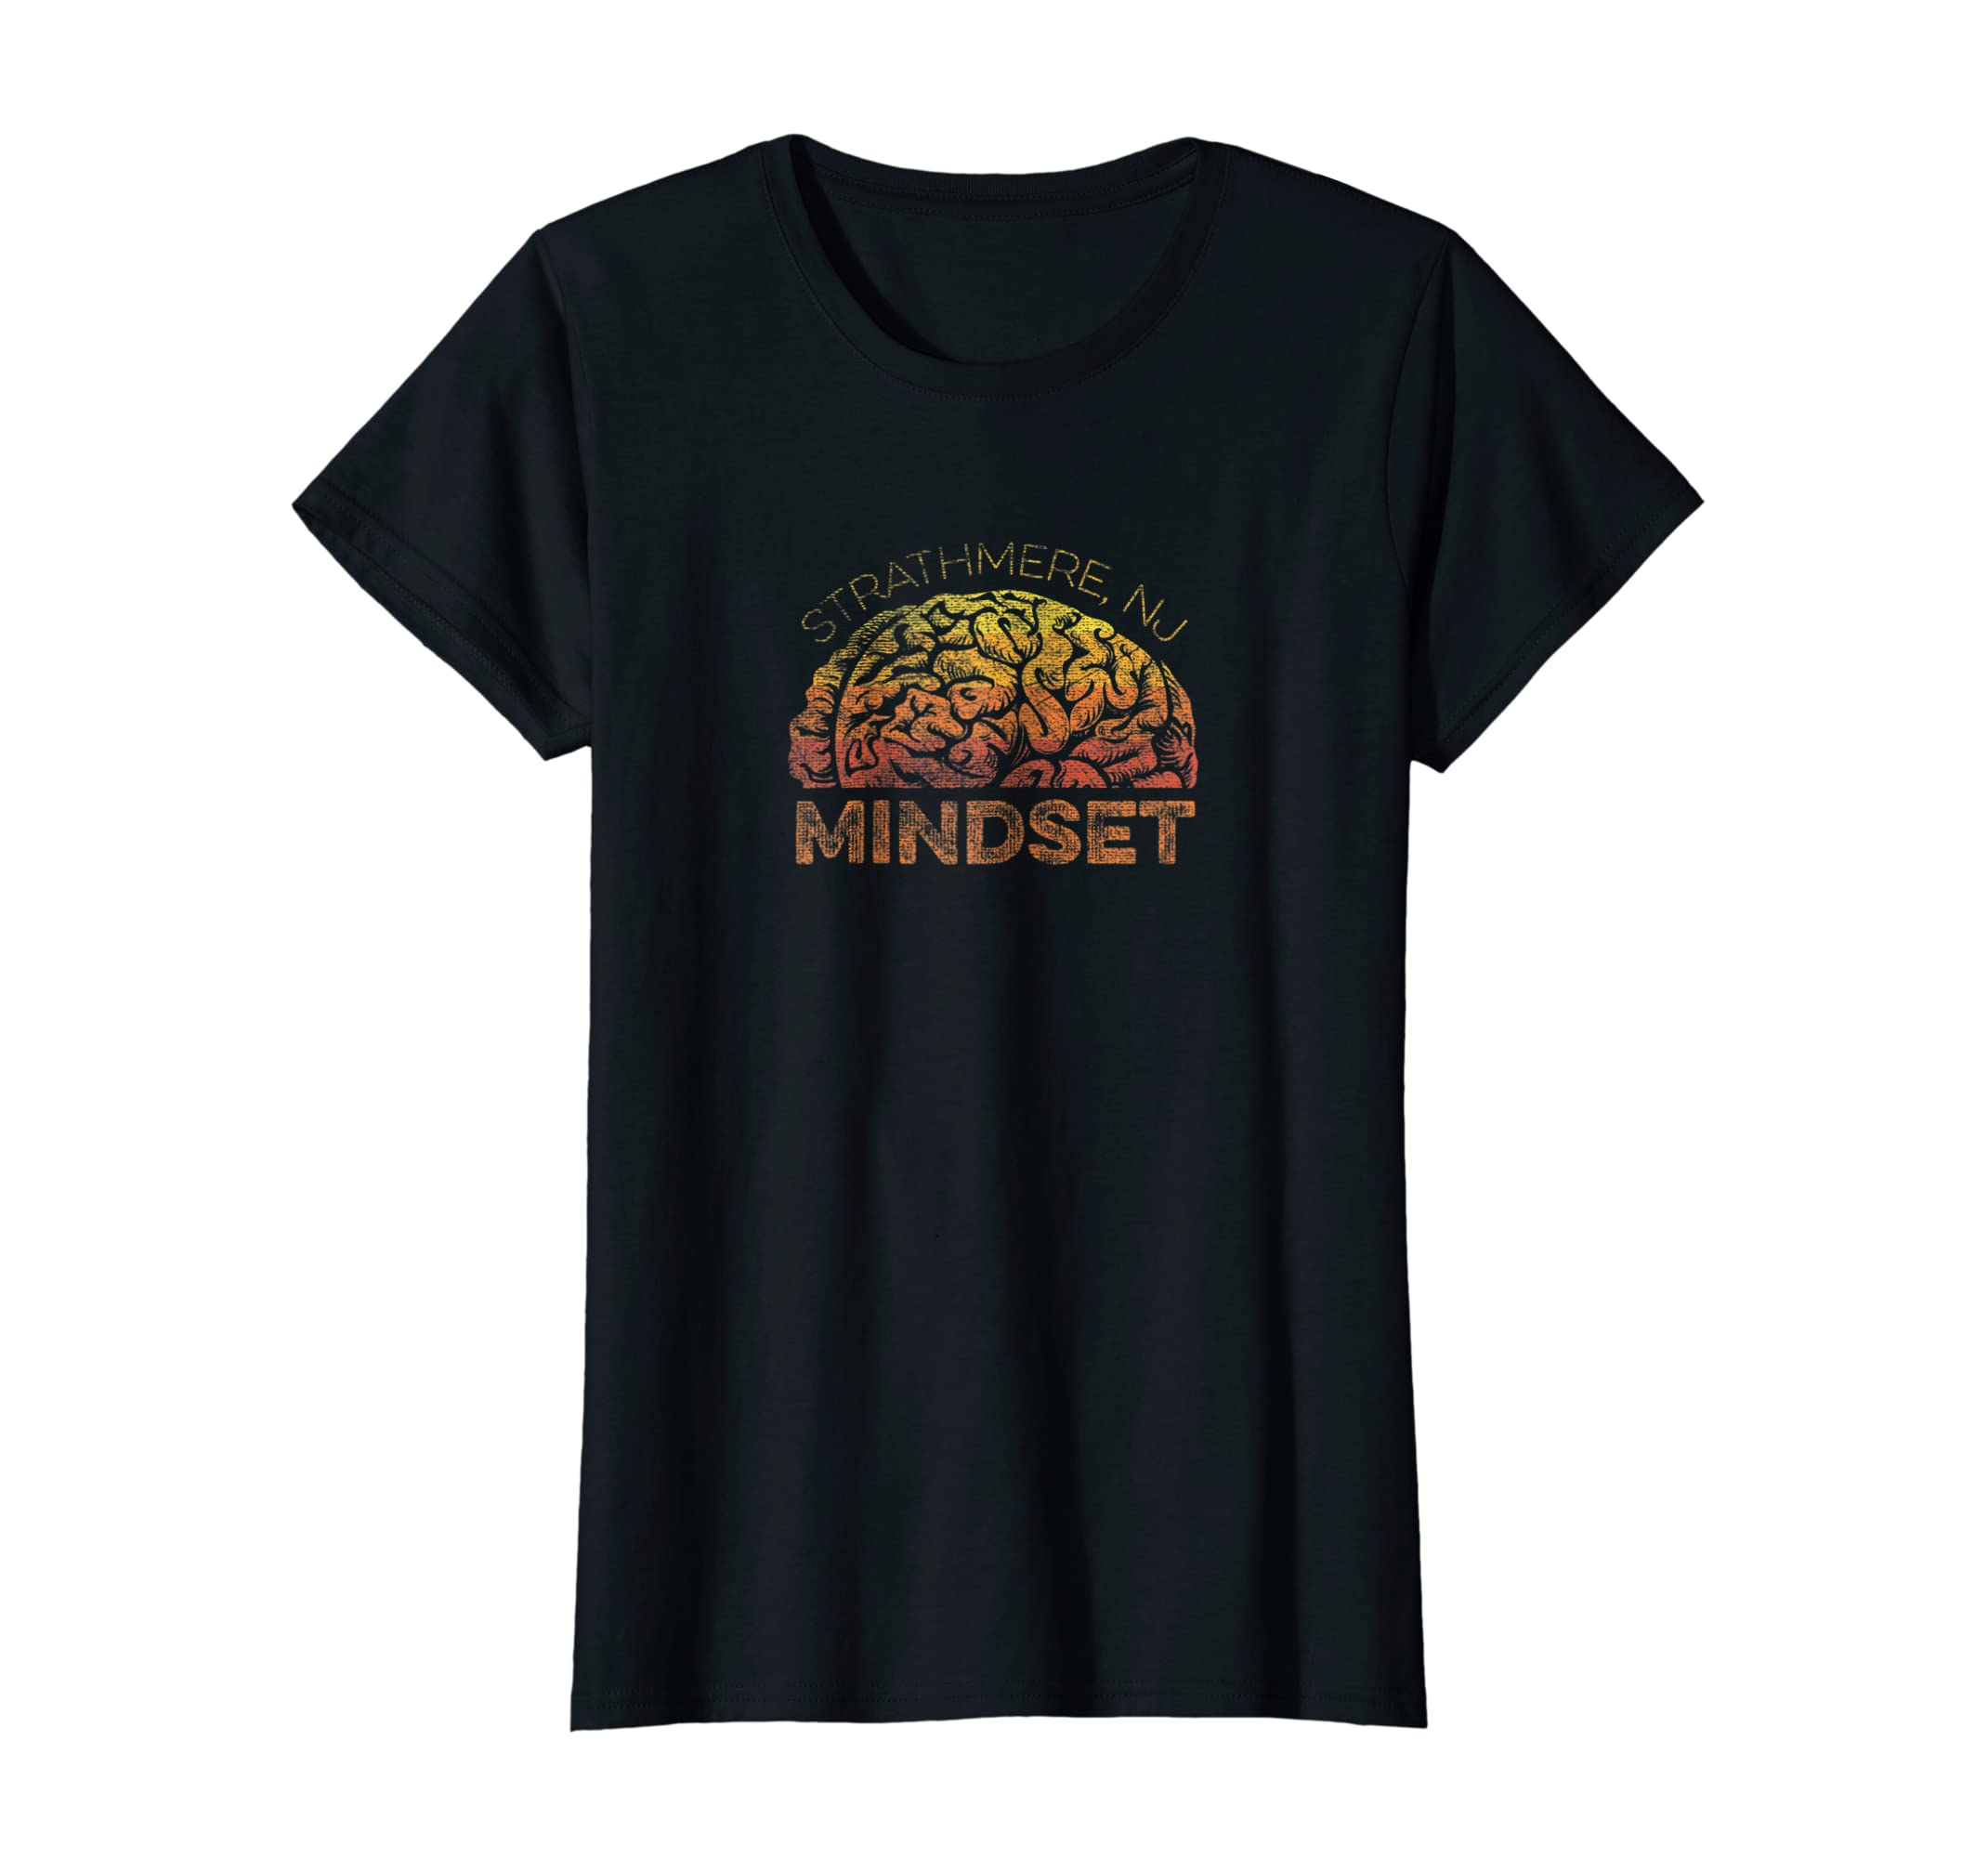 cfb9e9a21 Amazon.com: Strathmere NJ Vacation Mindset T-shirt: Clothing